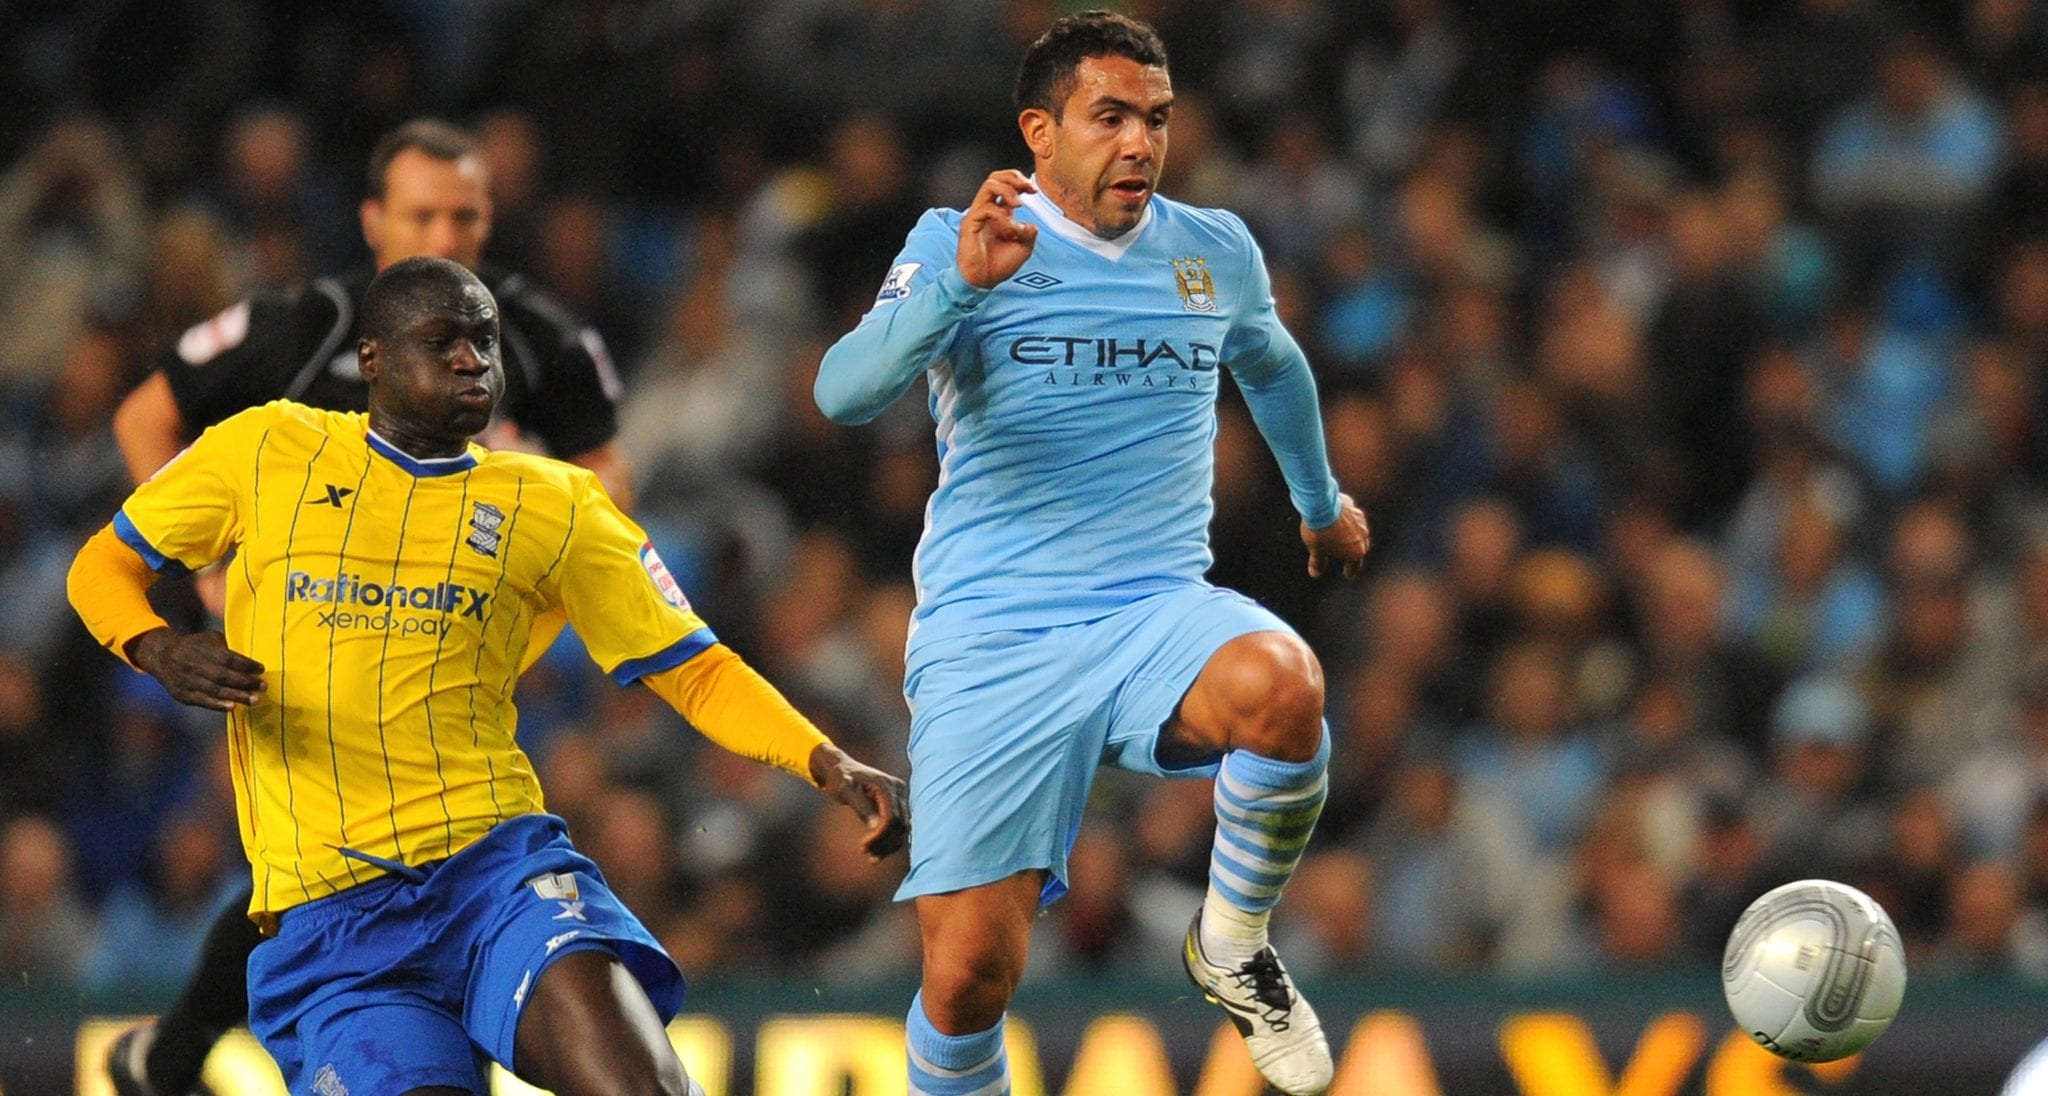 carlos tevez | © ANDREW YATES/AFP/Getty Images